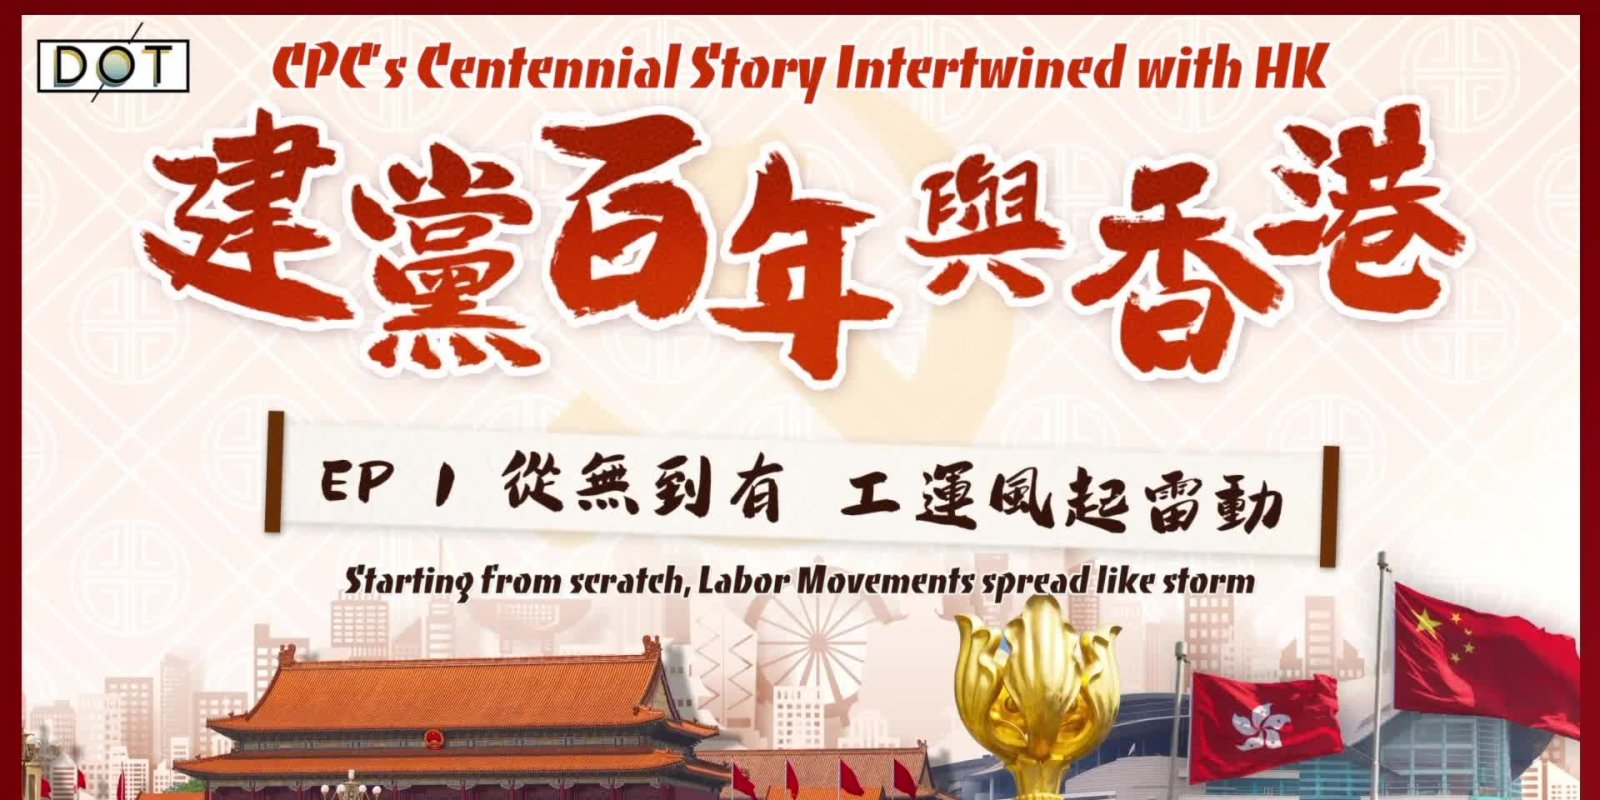 CPC's Centennial Story Intertwined with HK   Starting from scratch, Labor Movements spread like storm